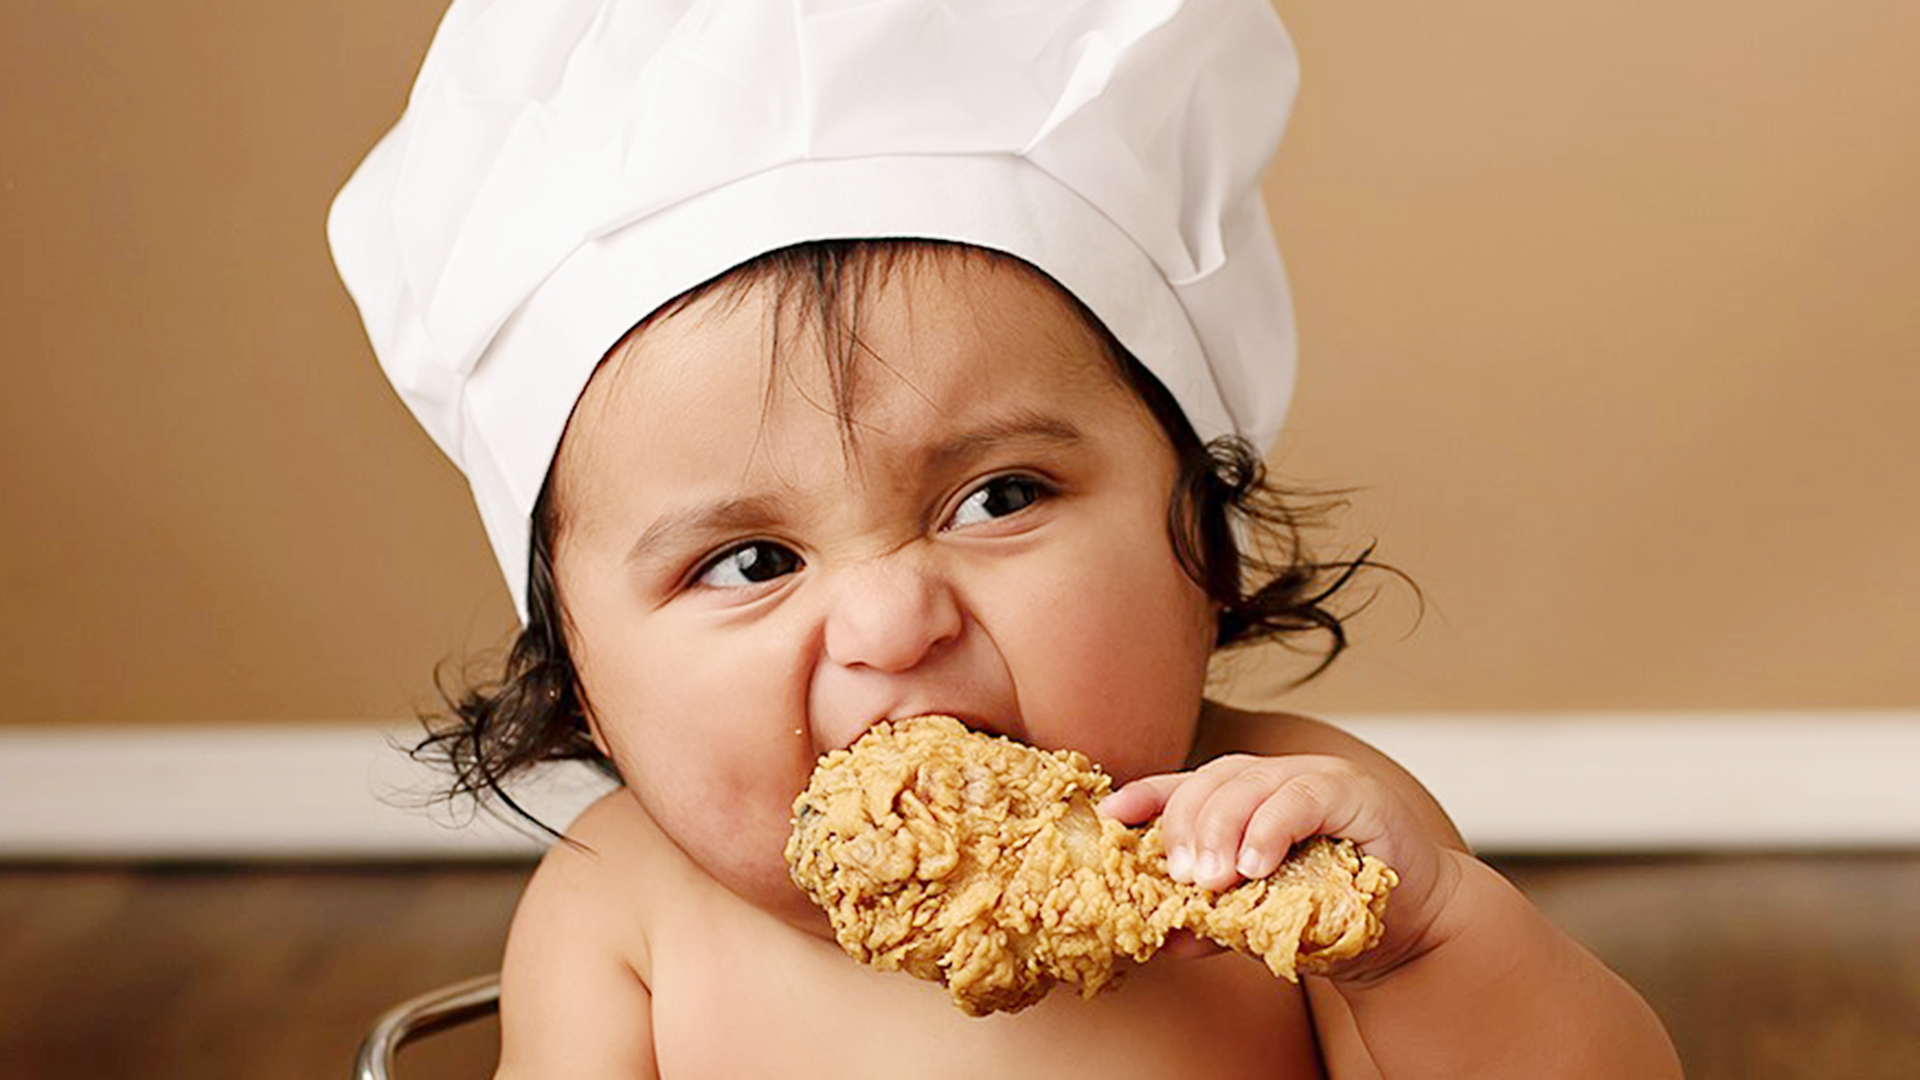 baby tries fried chicken for 1st time in cute photo shoot - today